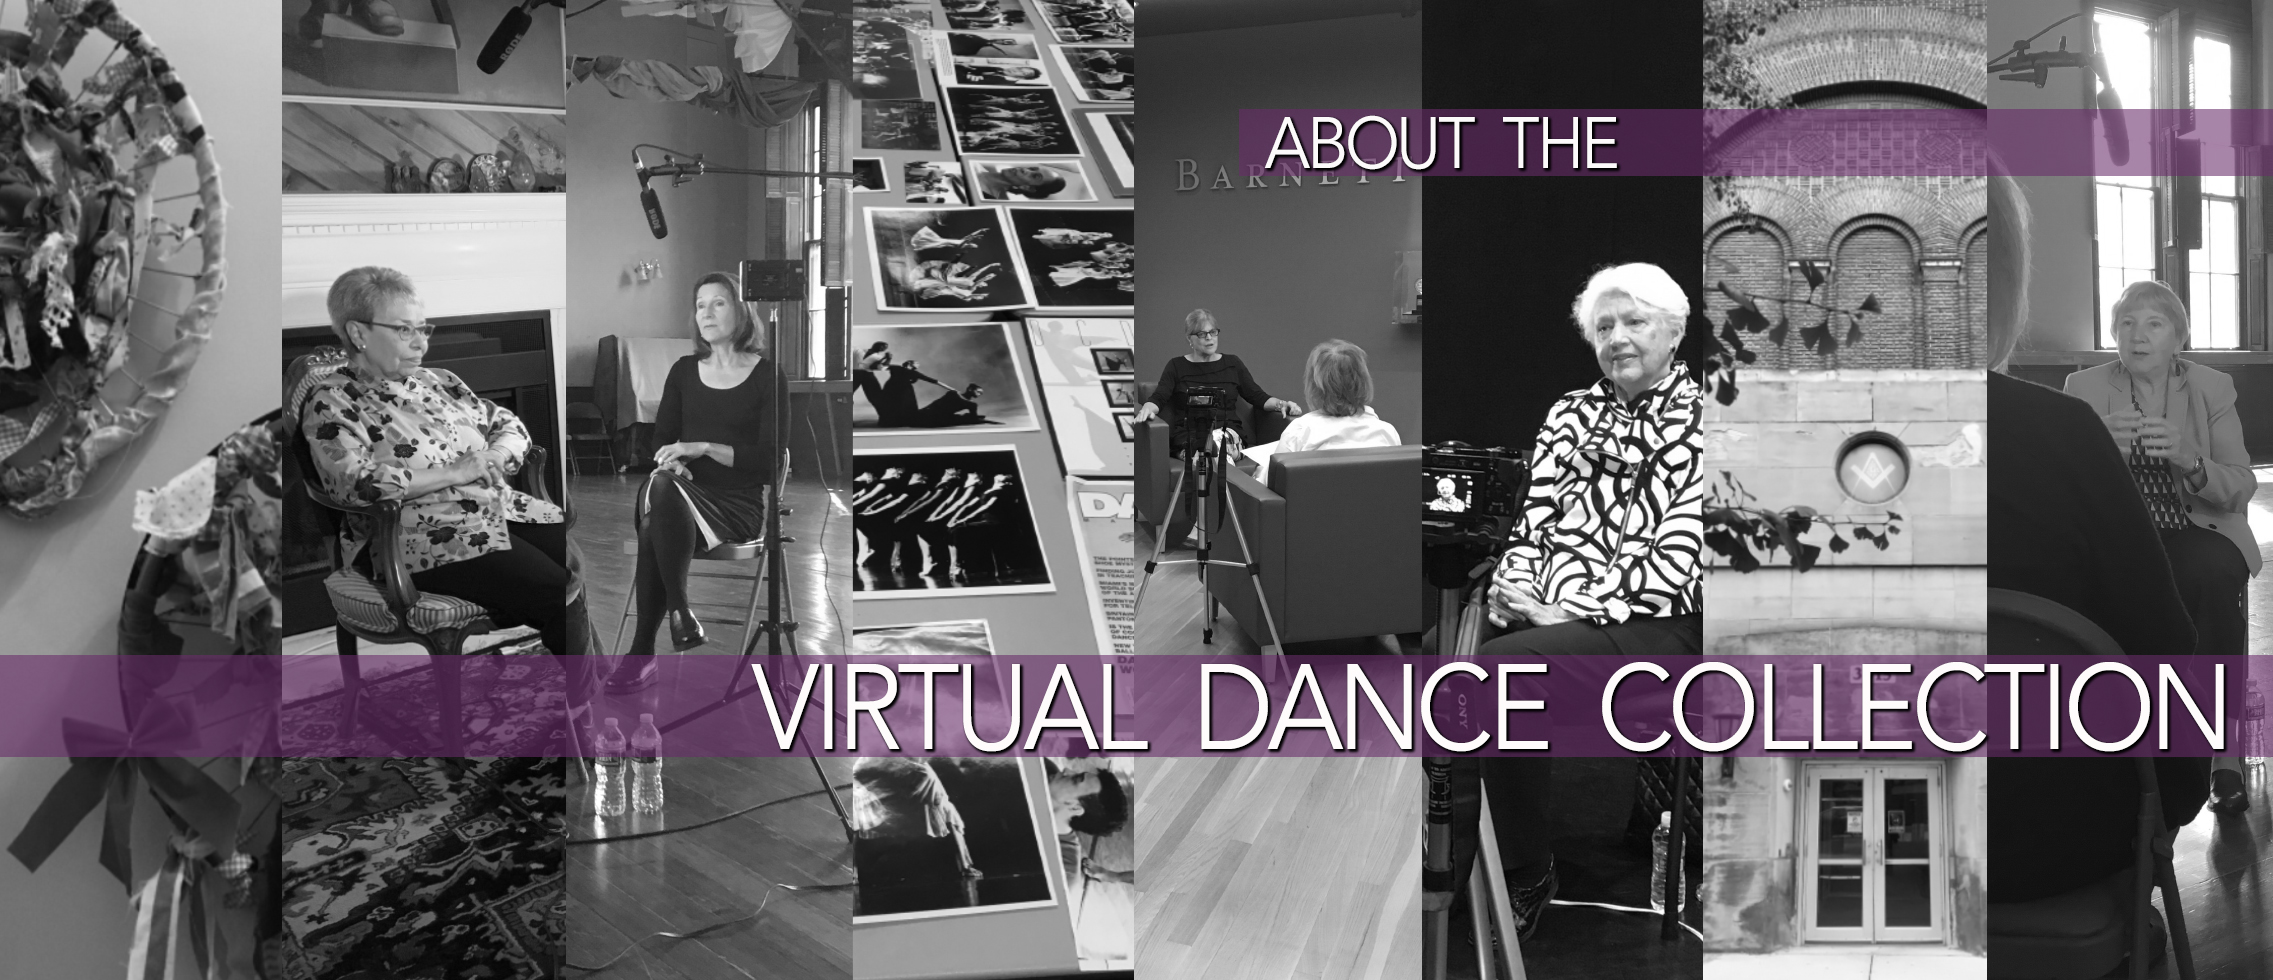 About the OhioDance Virtual Collection